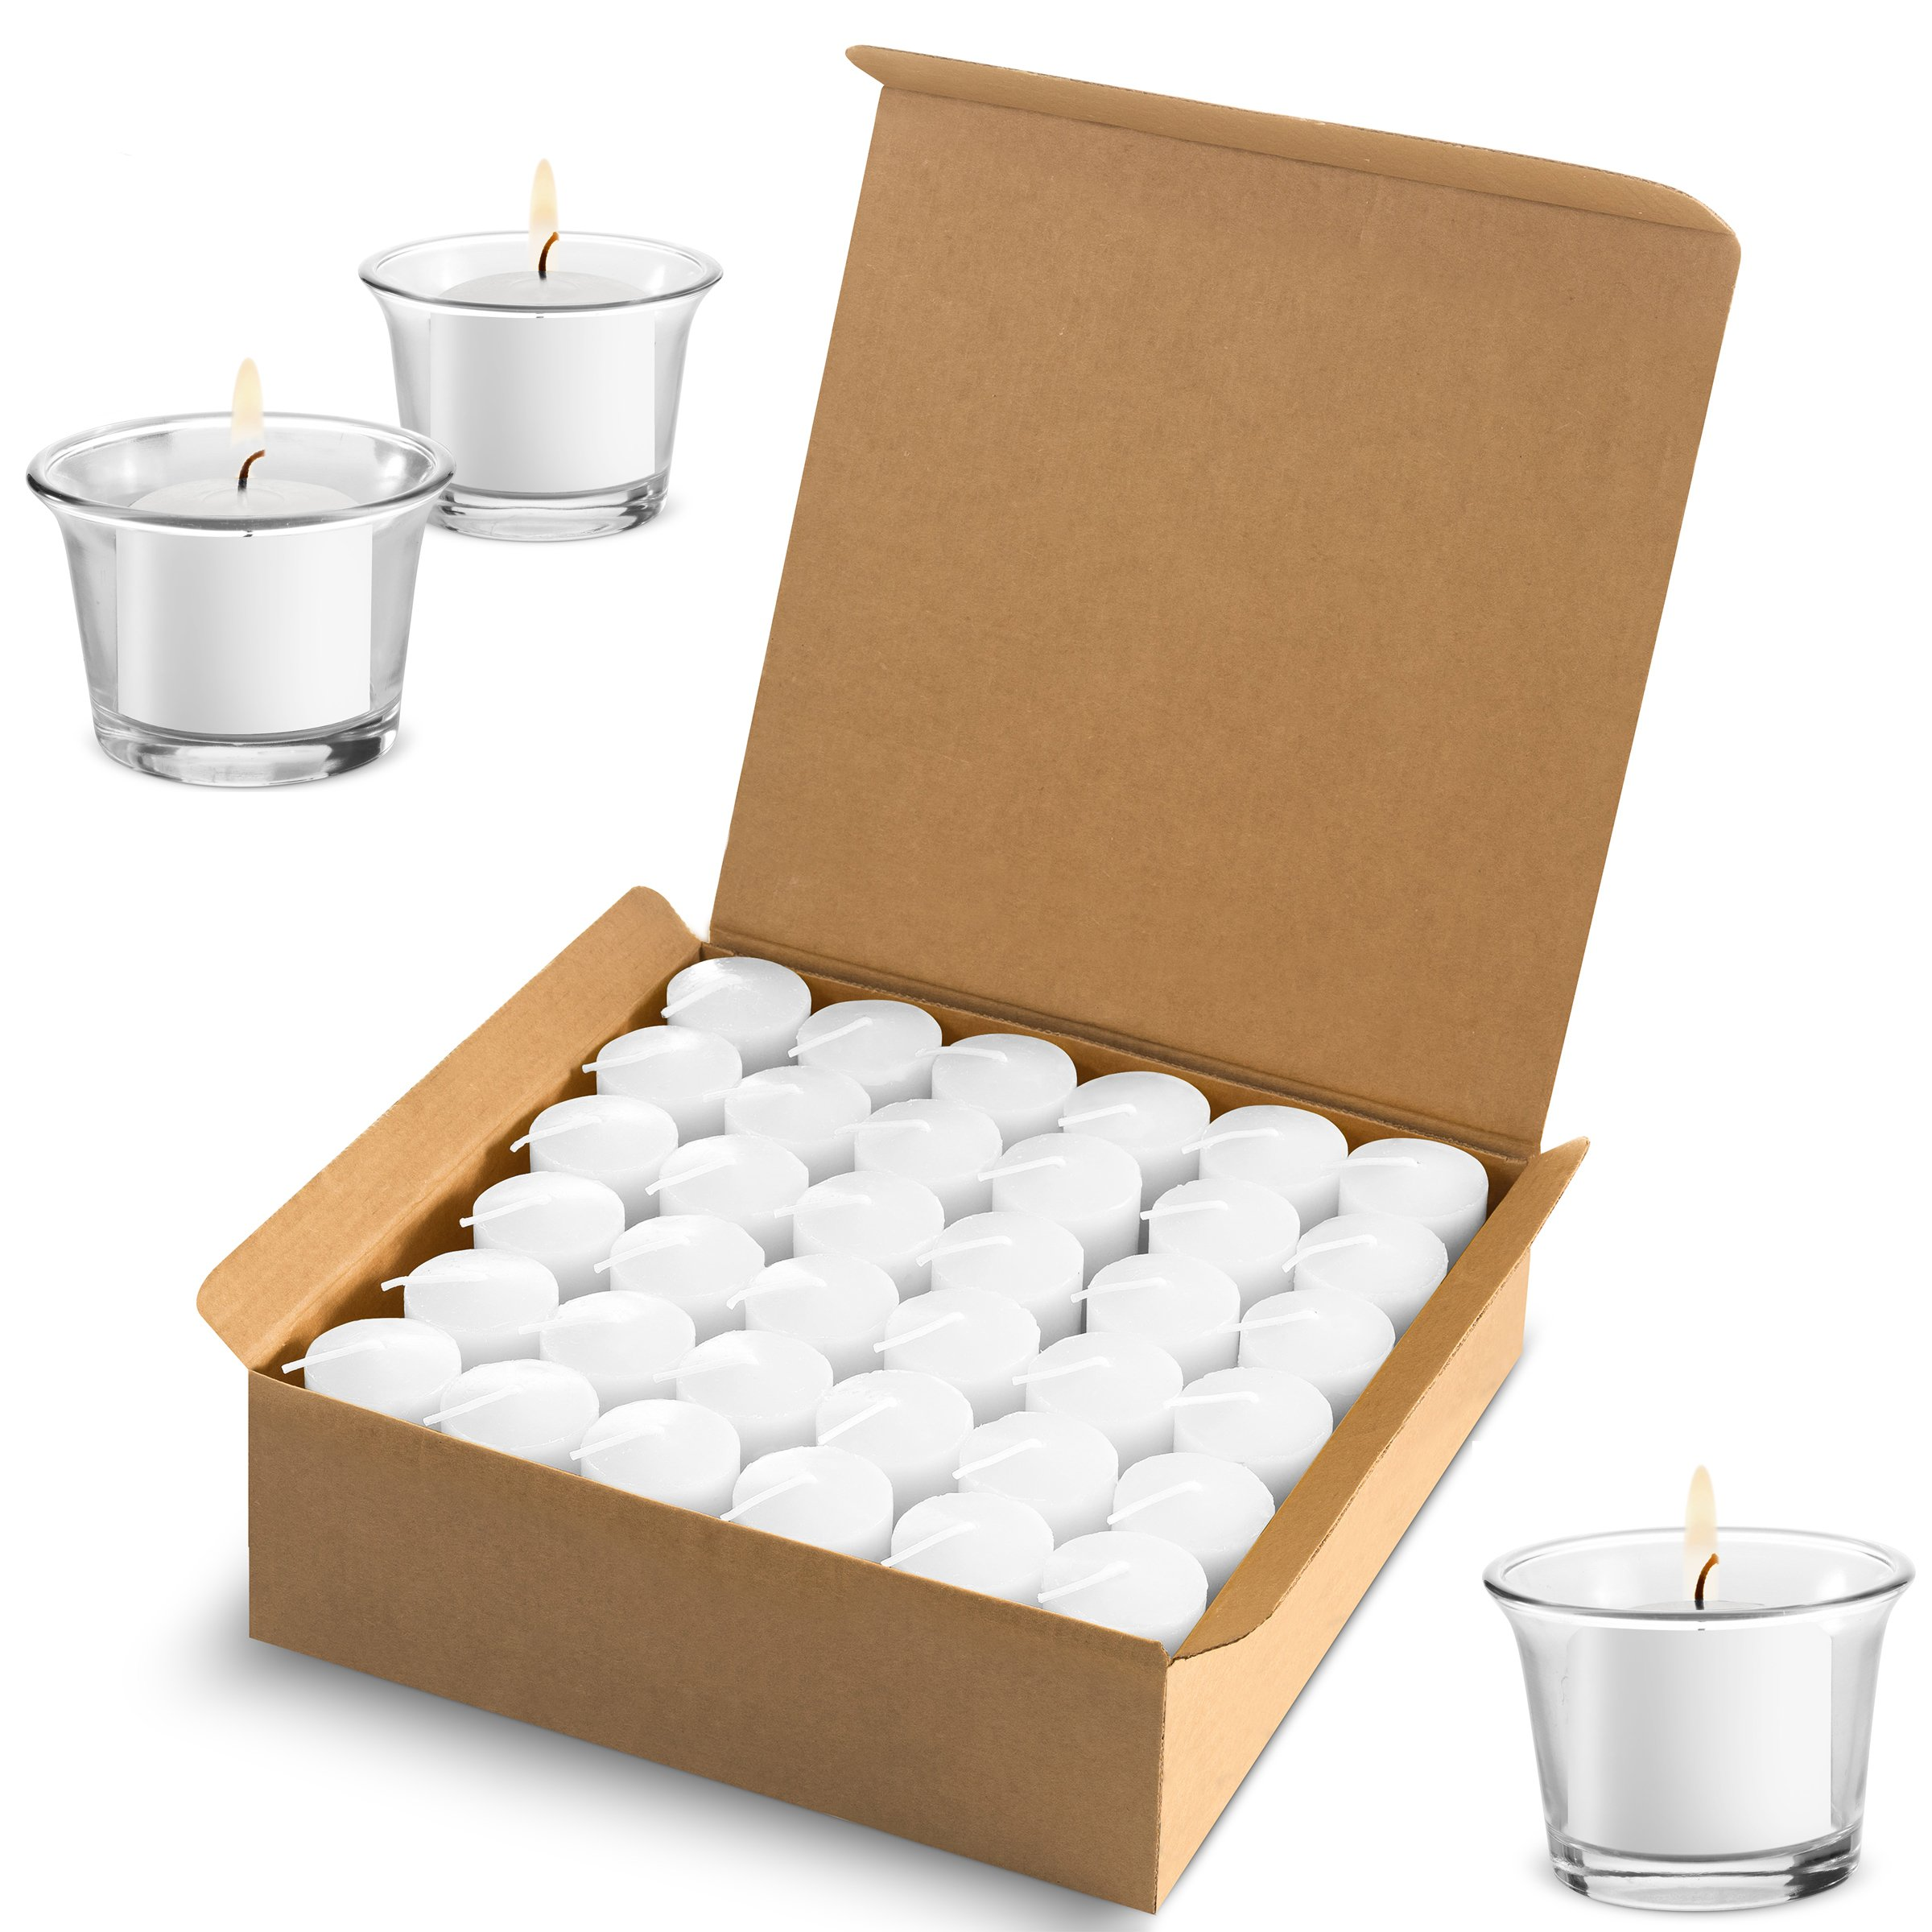 Votive Candles Wedding Dinner, Holiday Home Decoration Unscented 10 Hour Burn - Set of 72 (Clear White) (Glass Votive Holders NOT Included) by Candle Charisma